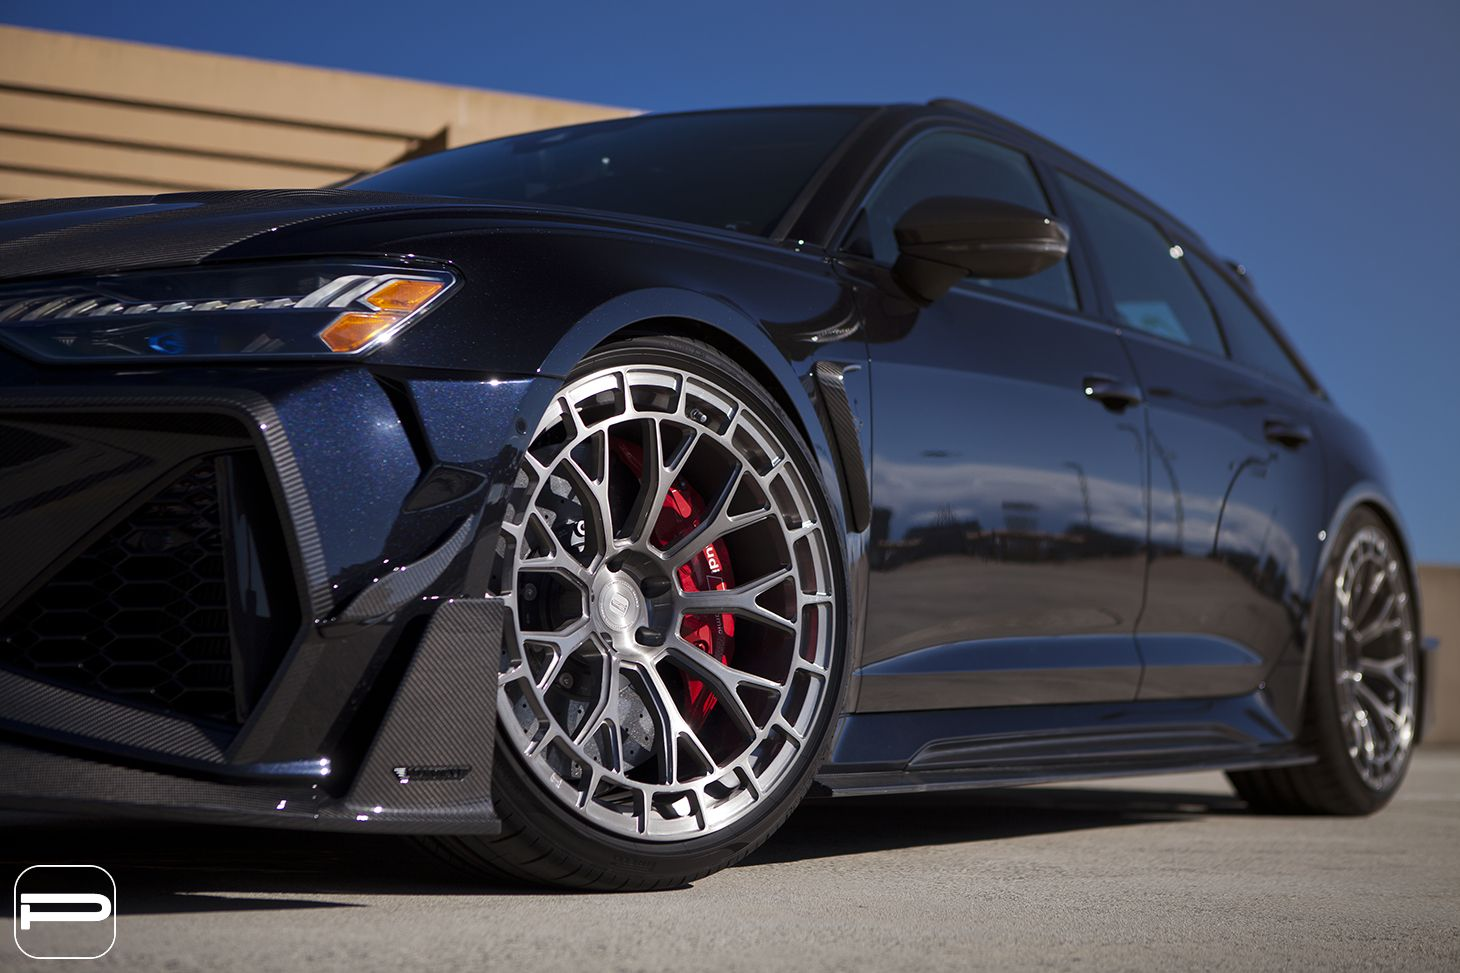 Mansory Audi RS6 Avant with PUR RS50 Forged Wheels by SR Auto Group